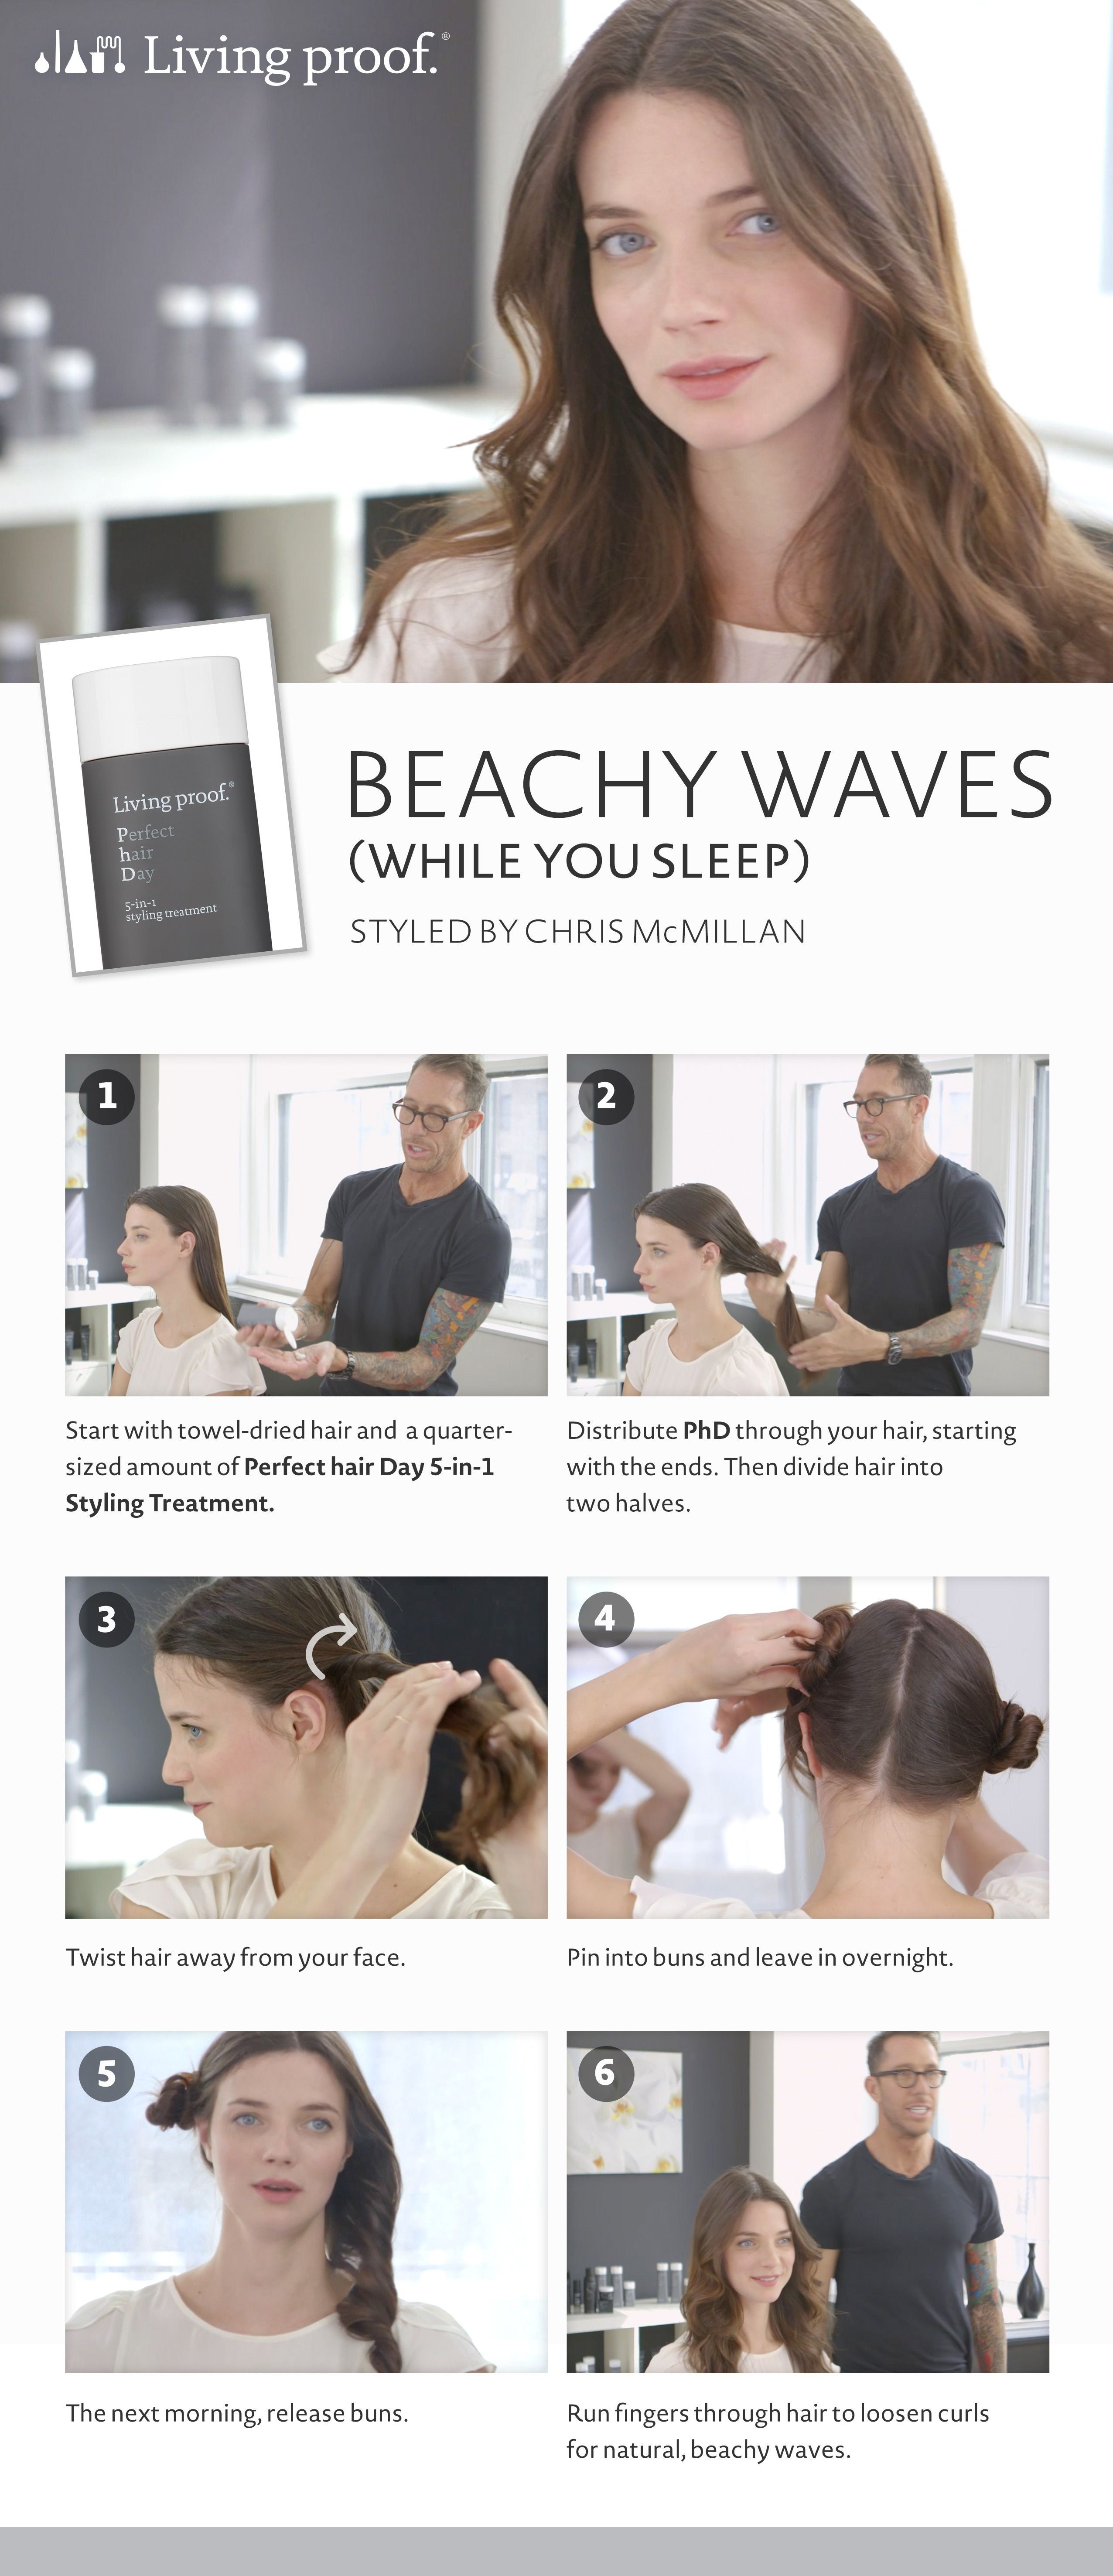 Here S The Secret To Styling Your Hair In Natural Beachy